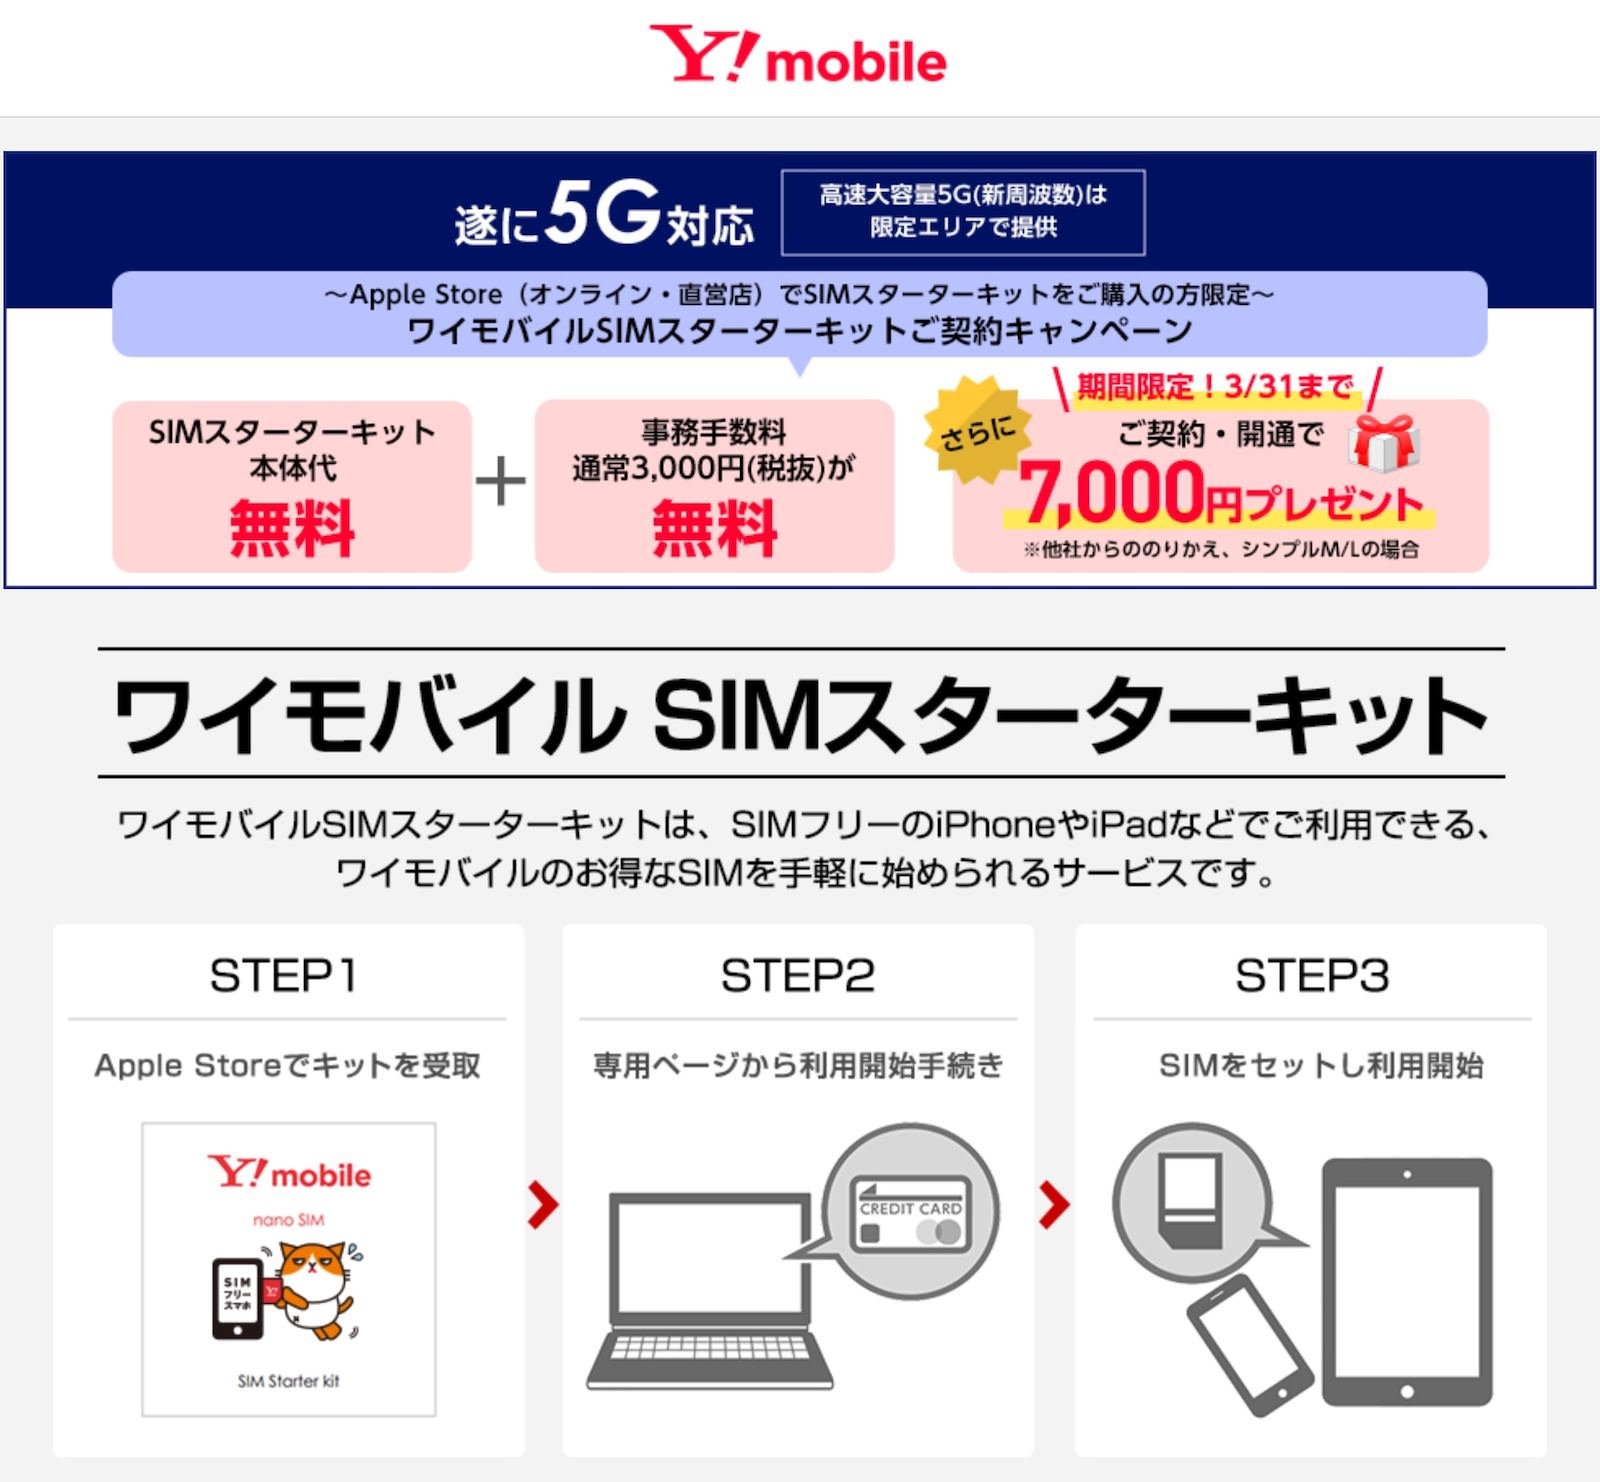 Ymobile iphone startup campaign